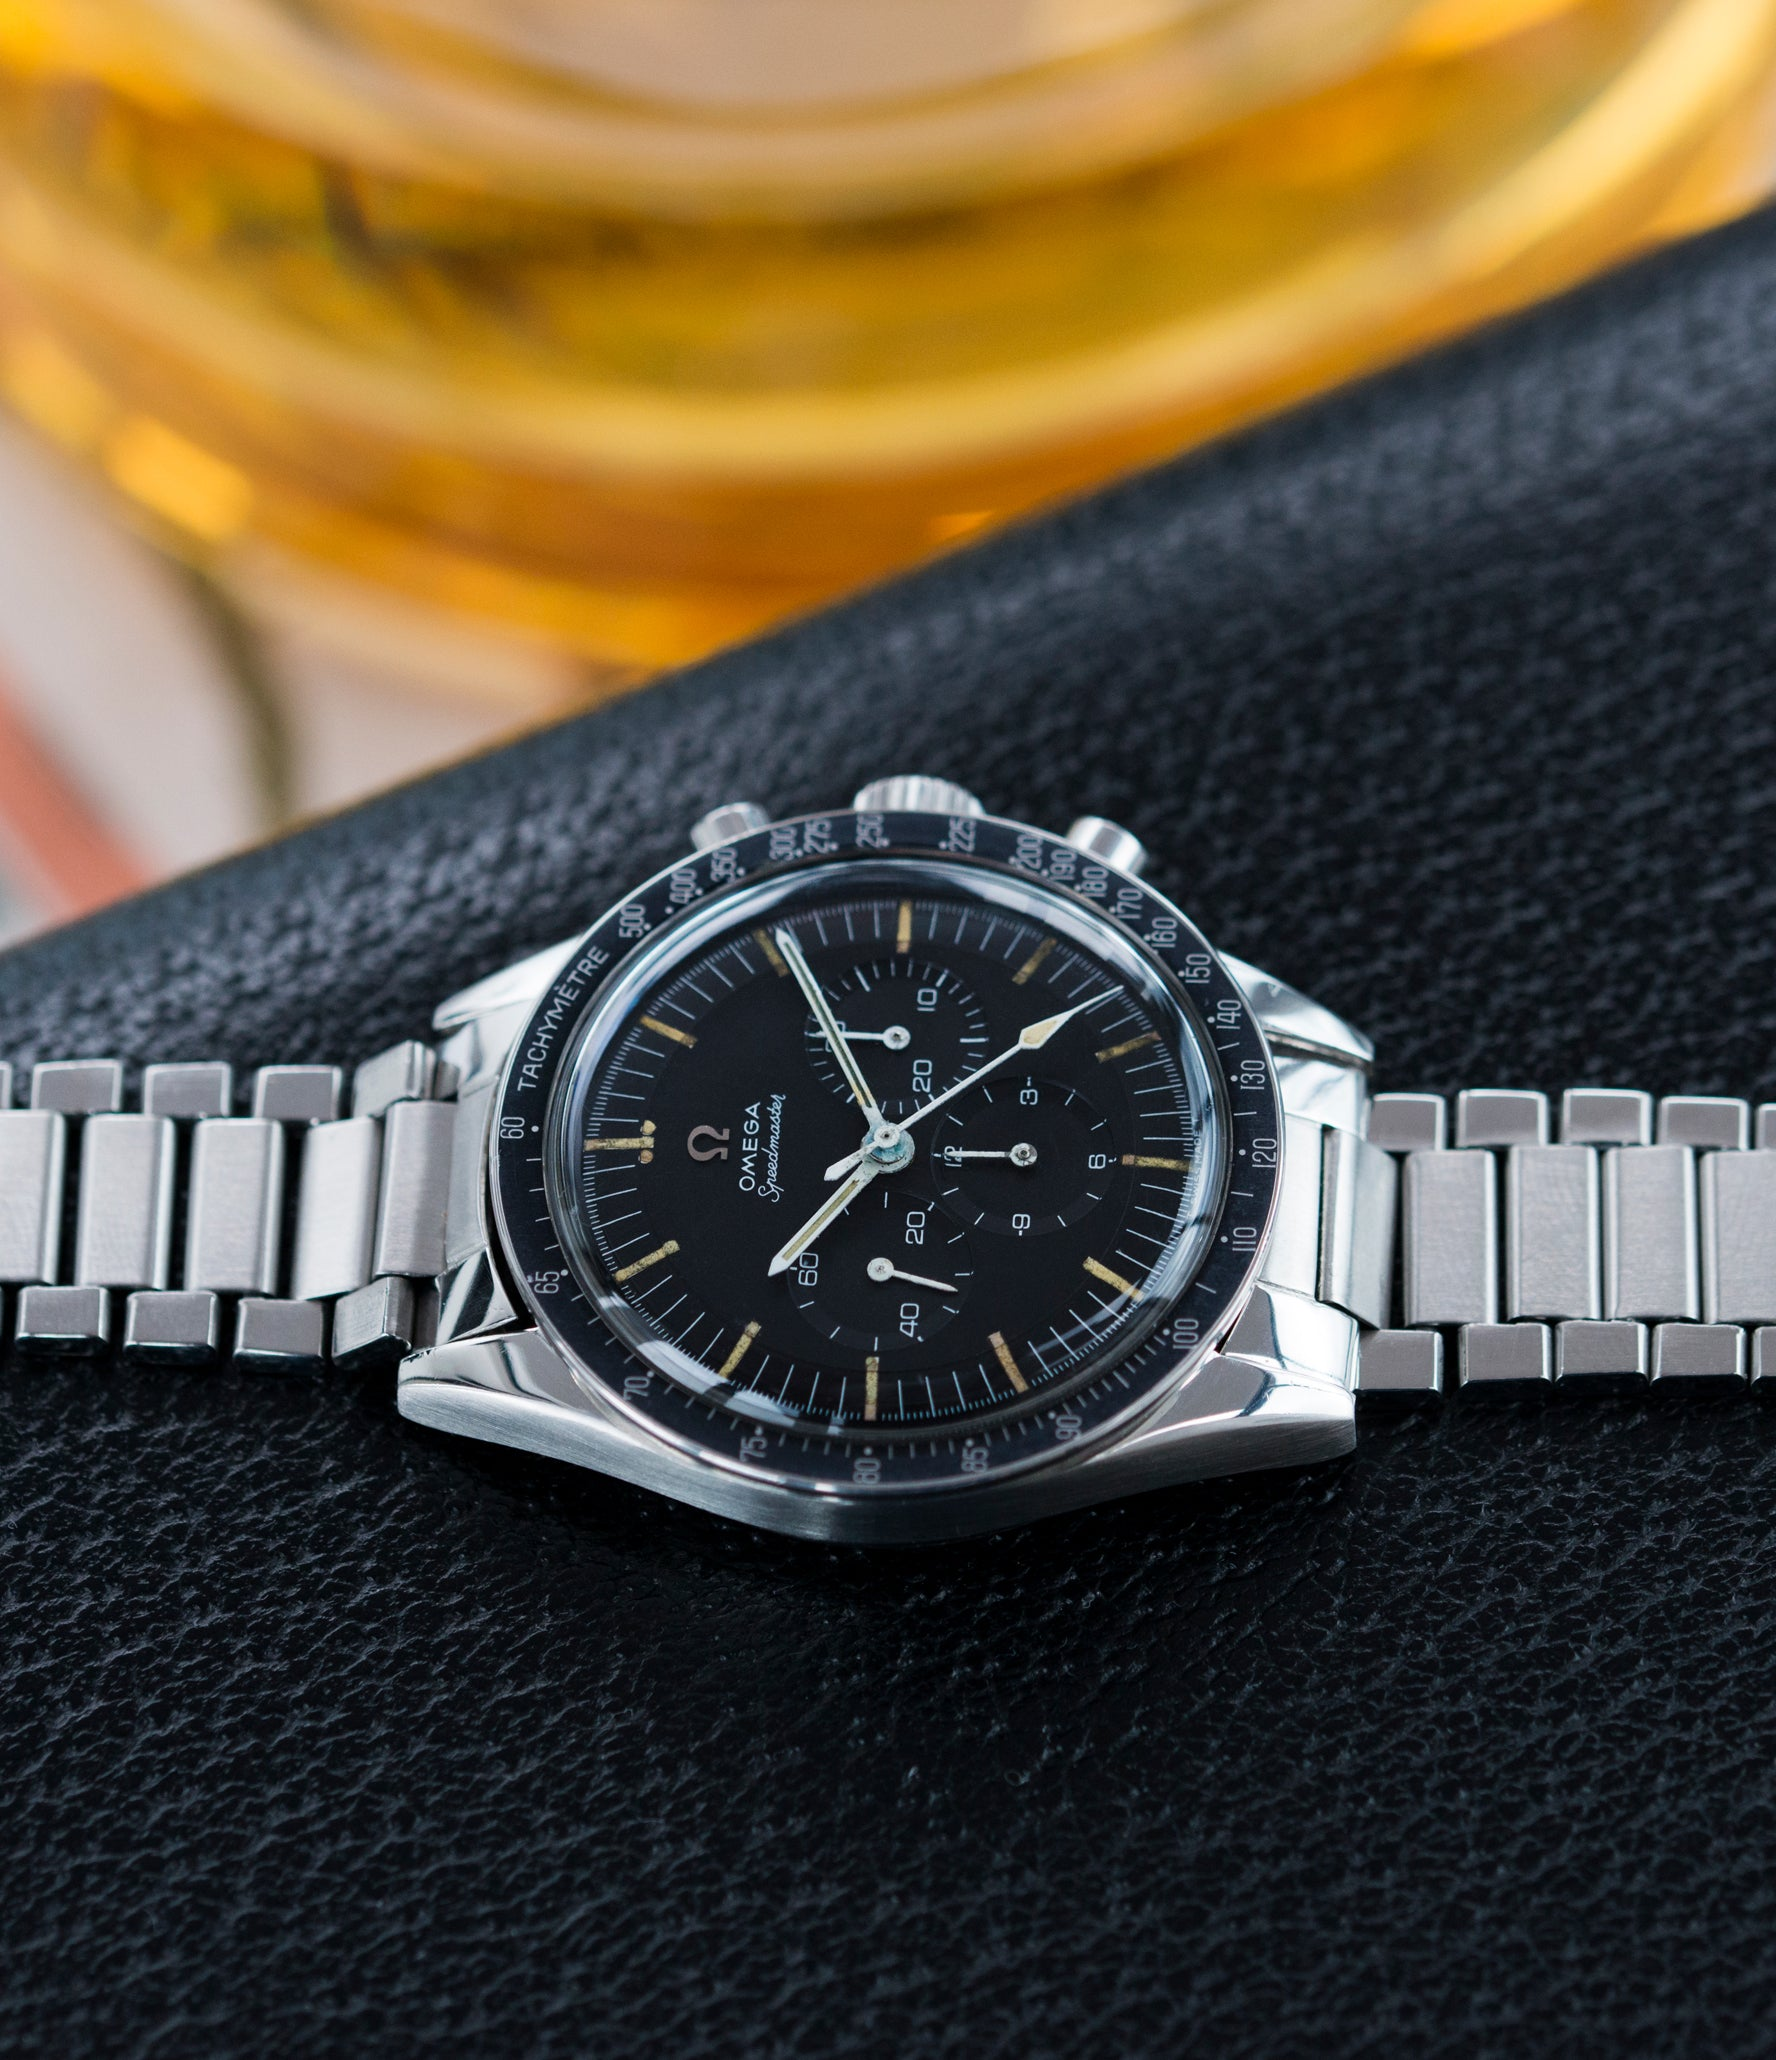 sell Omega Speedmaster Pre-Professional Ed White 105003 steel vintage chronograph 7912 flat-link bracelet for sale online at A Collected Man UK specialist of rare vintage watches